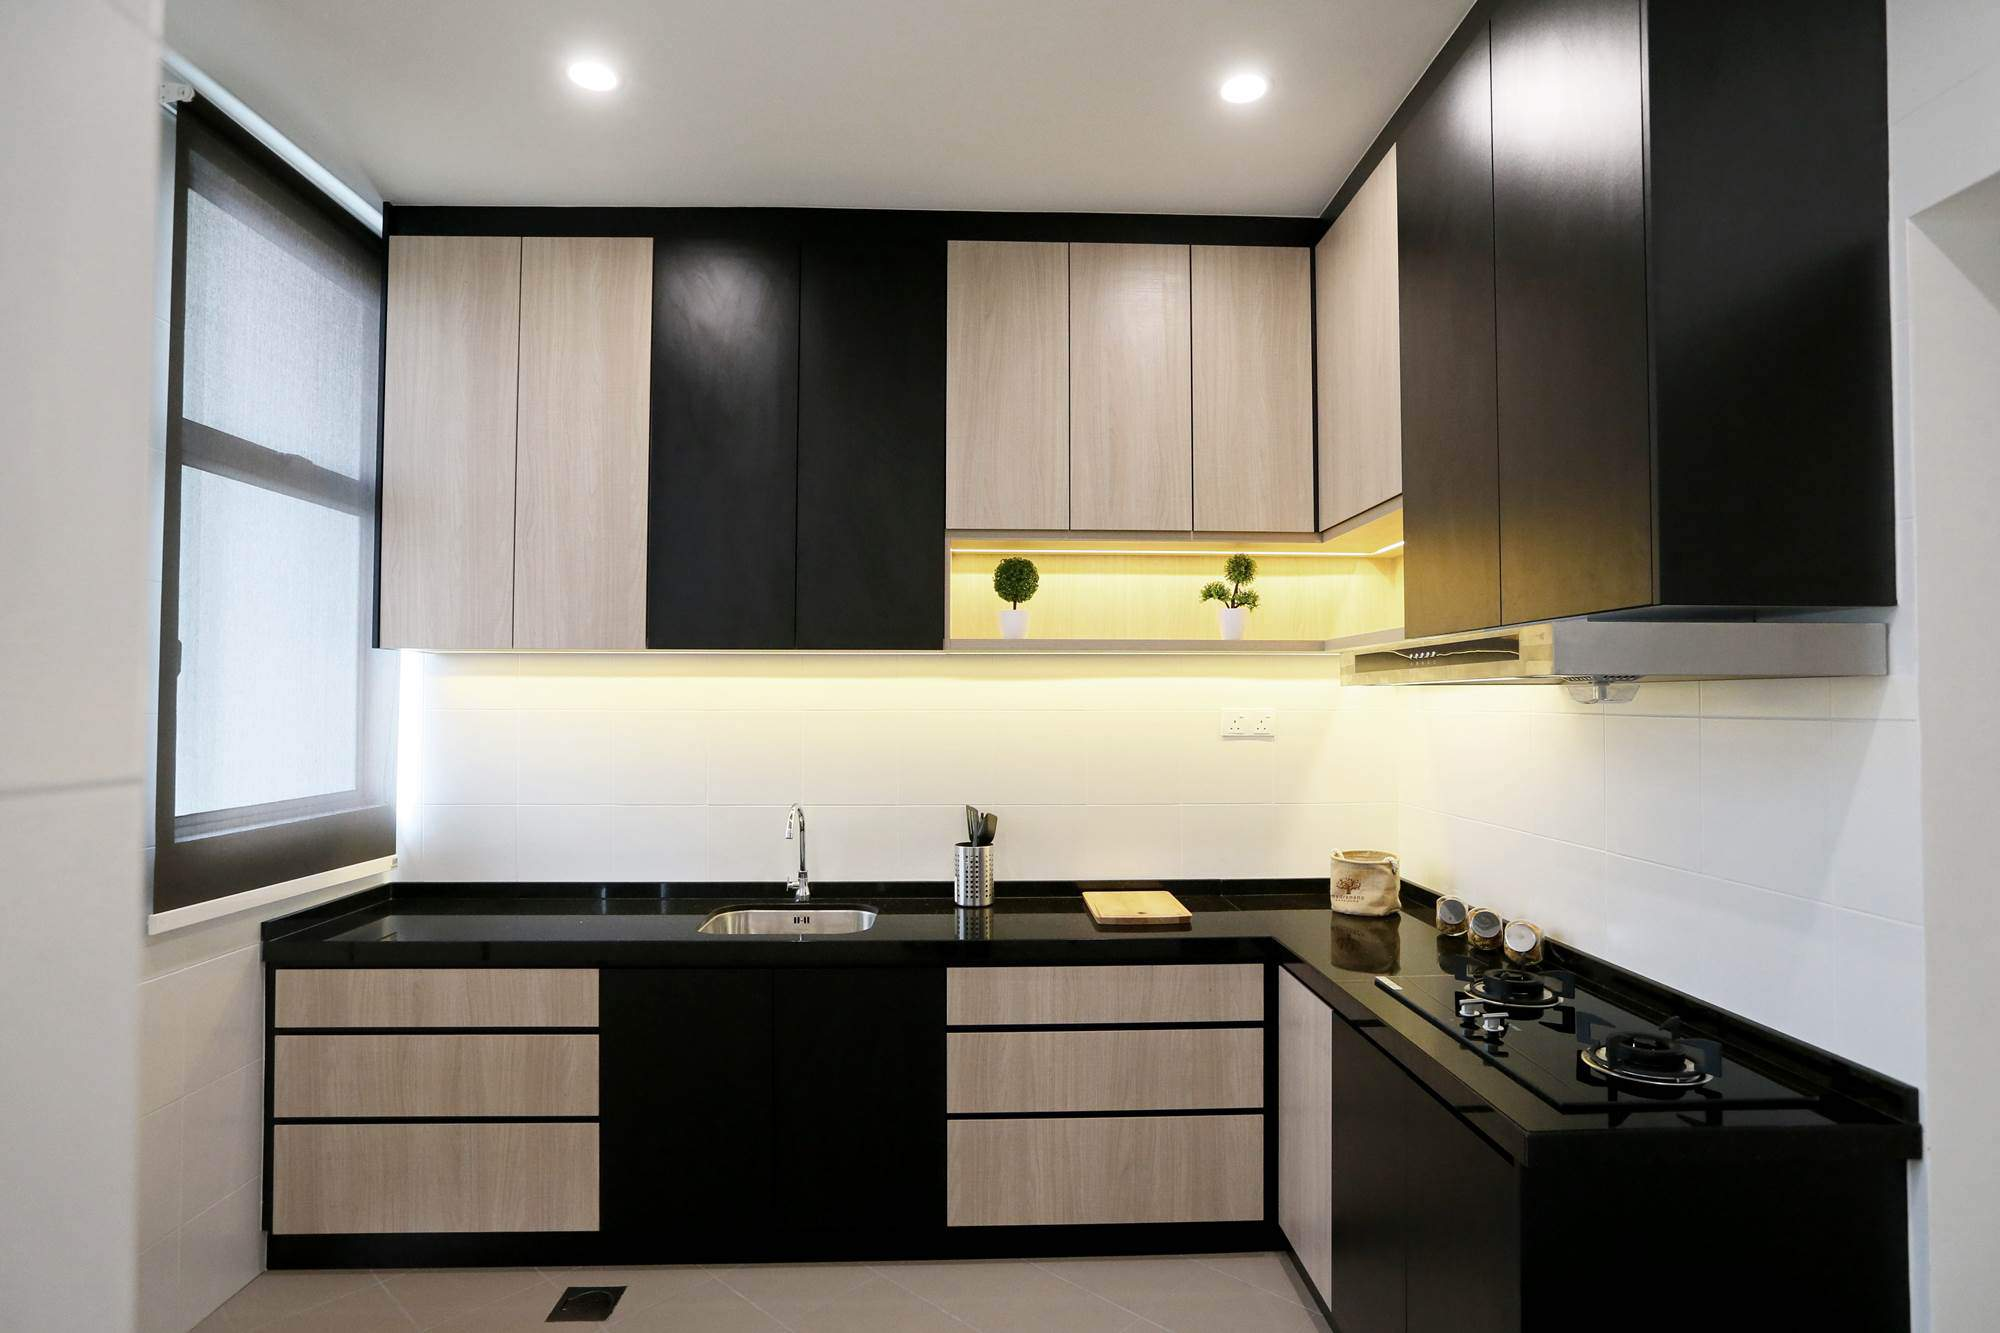 Modern Terrace House Kitchen Design Features Black And Light Timber  Finishes.